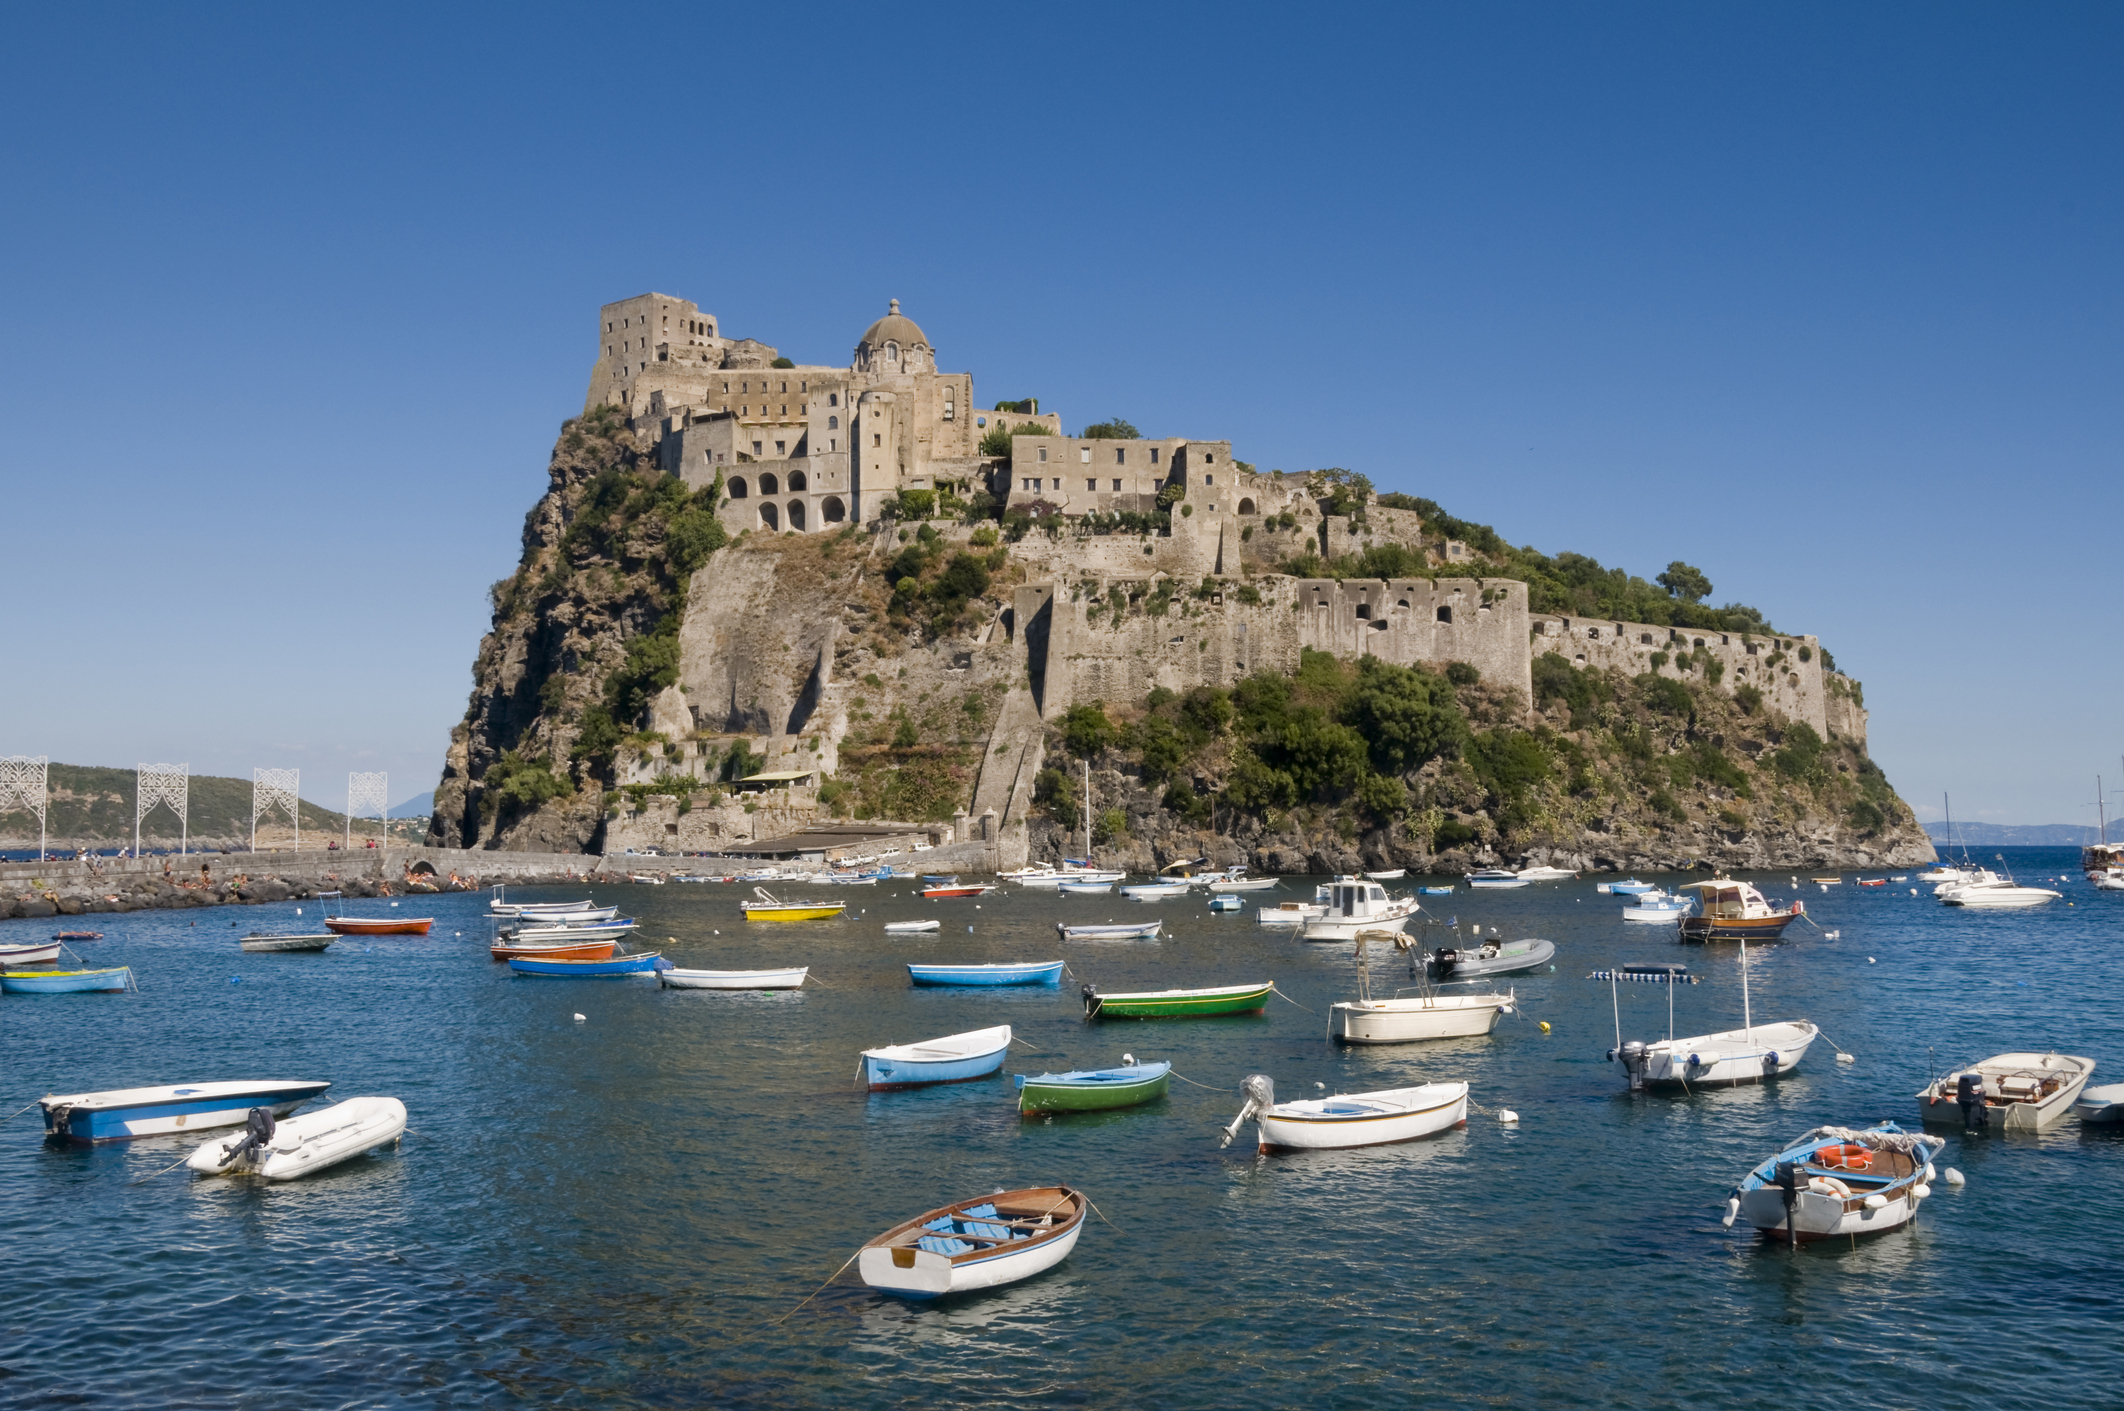 """Castello Aragonese in Ischia Ponte, on Ischia island near Naples, Italy. Many little boats in the sea."""